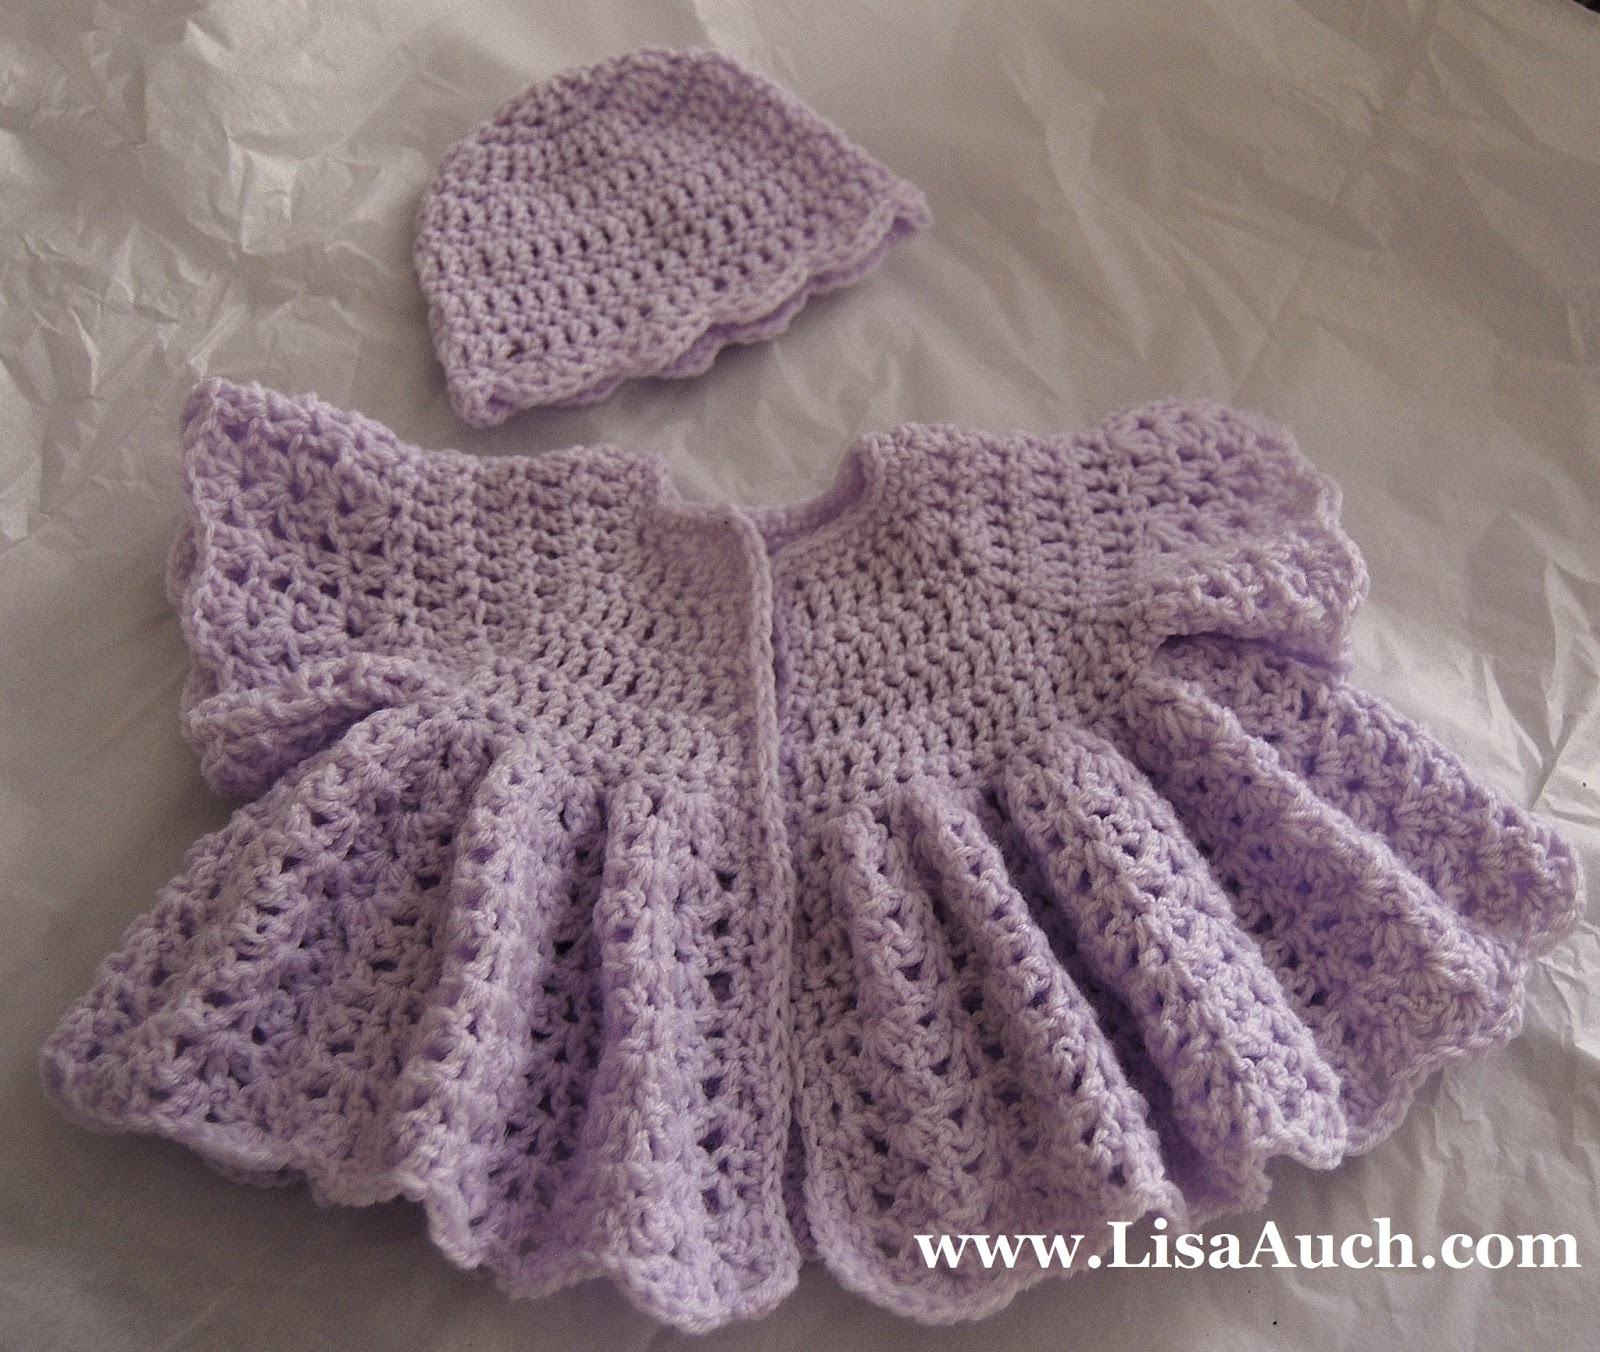 Free Crochet Patterns For Easy Baby Sweaters : Free Crochet Sweater Patterns for Babies